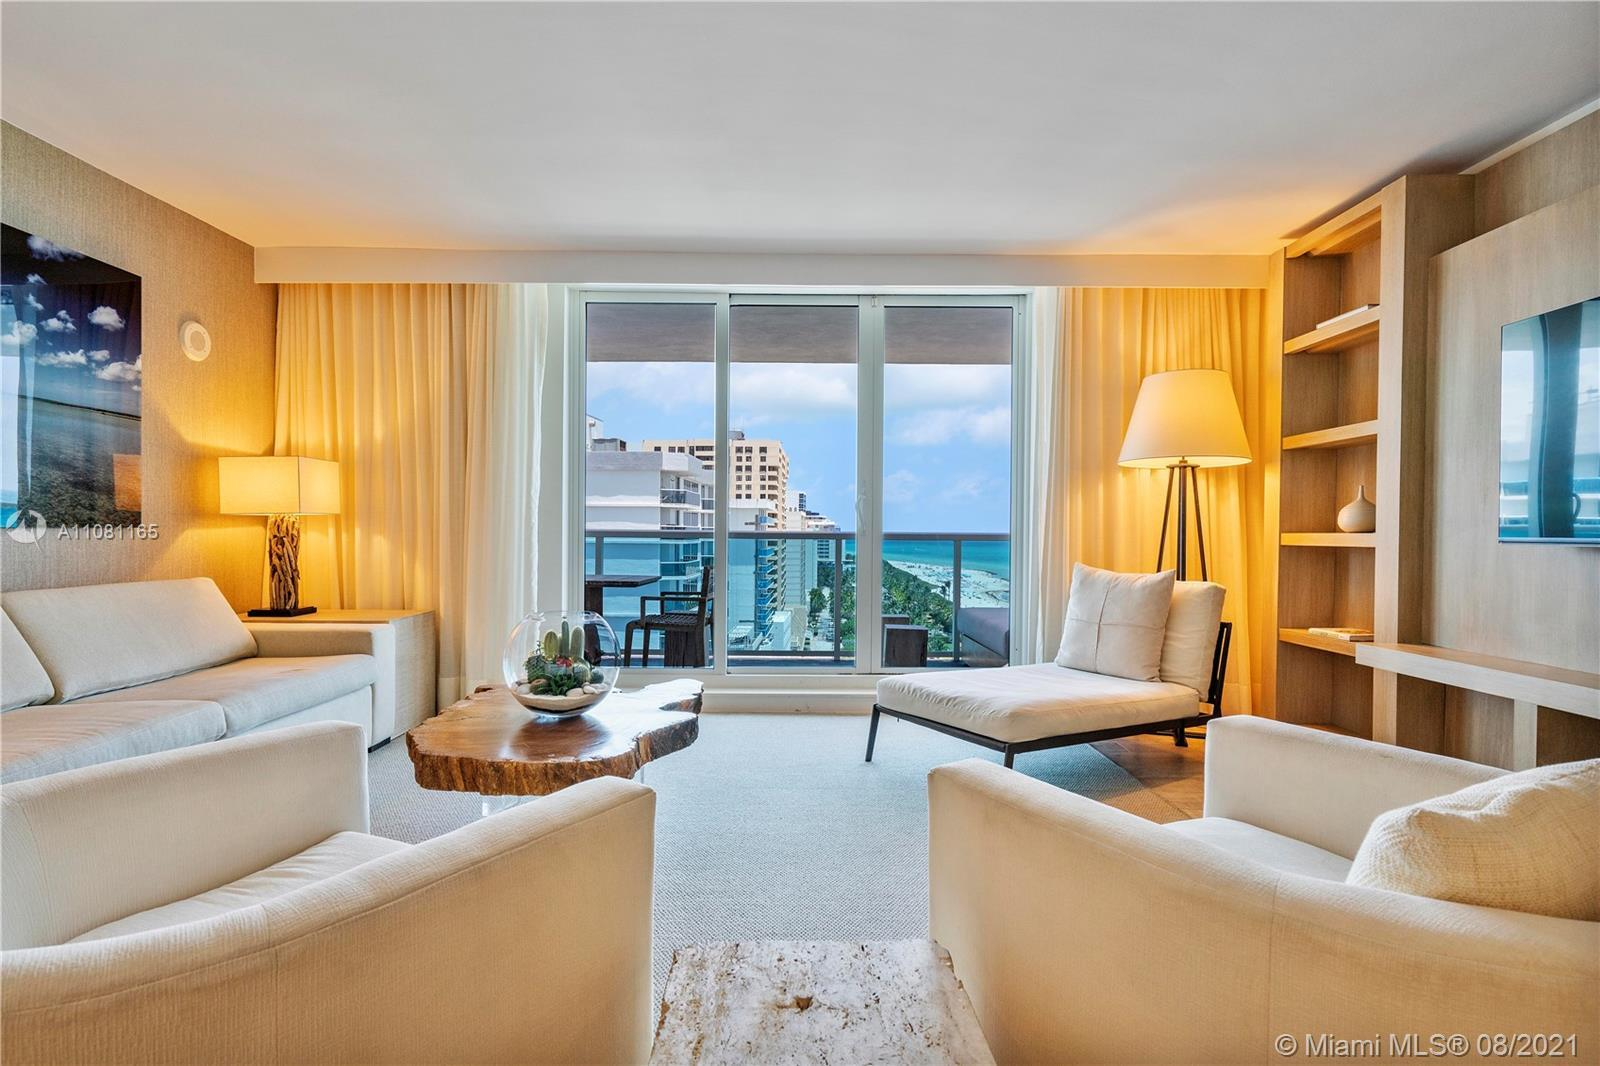 The perfect Miami Beach spot to relax and enjoy 5 star resort living. Custom furniture package caref